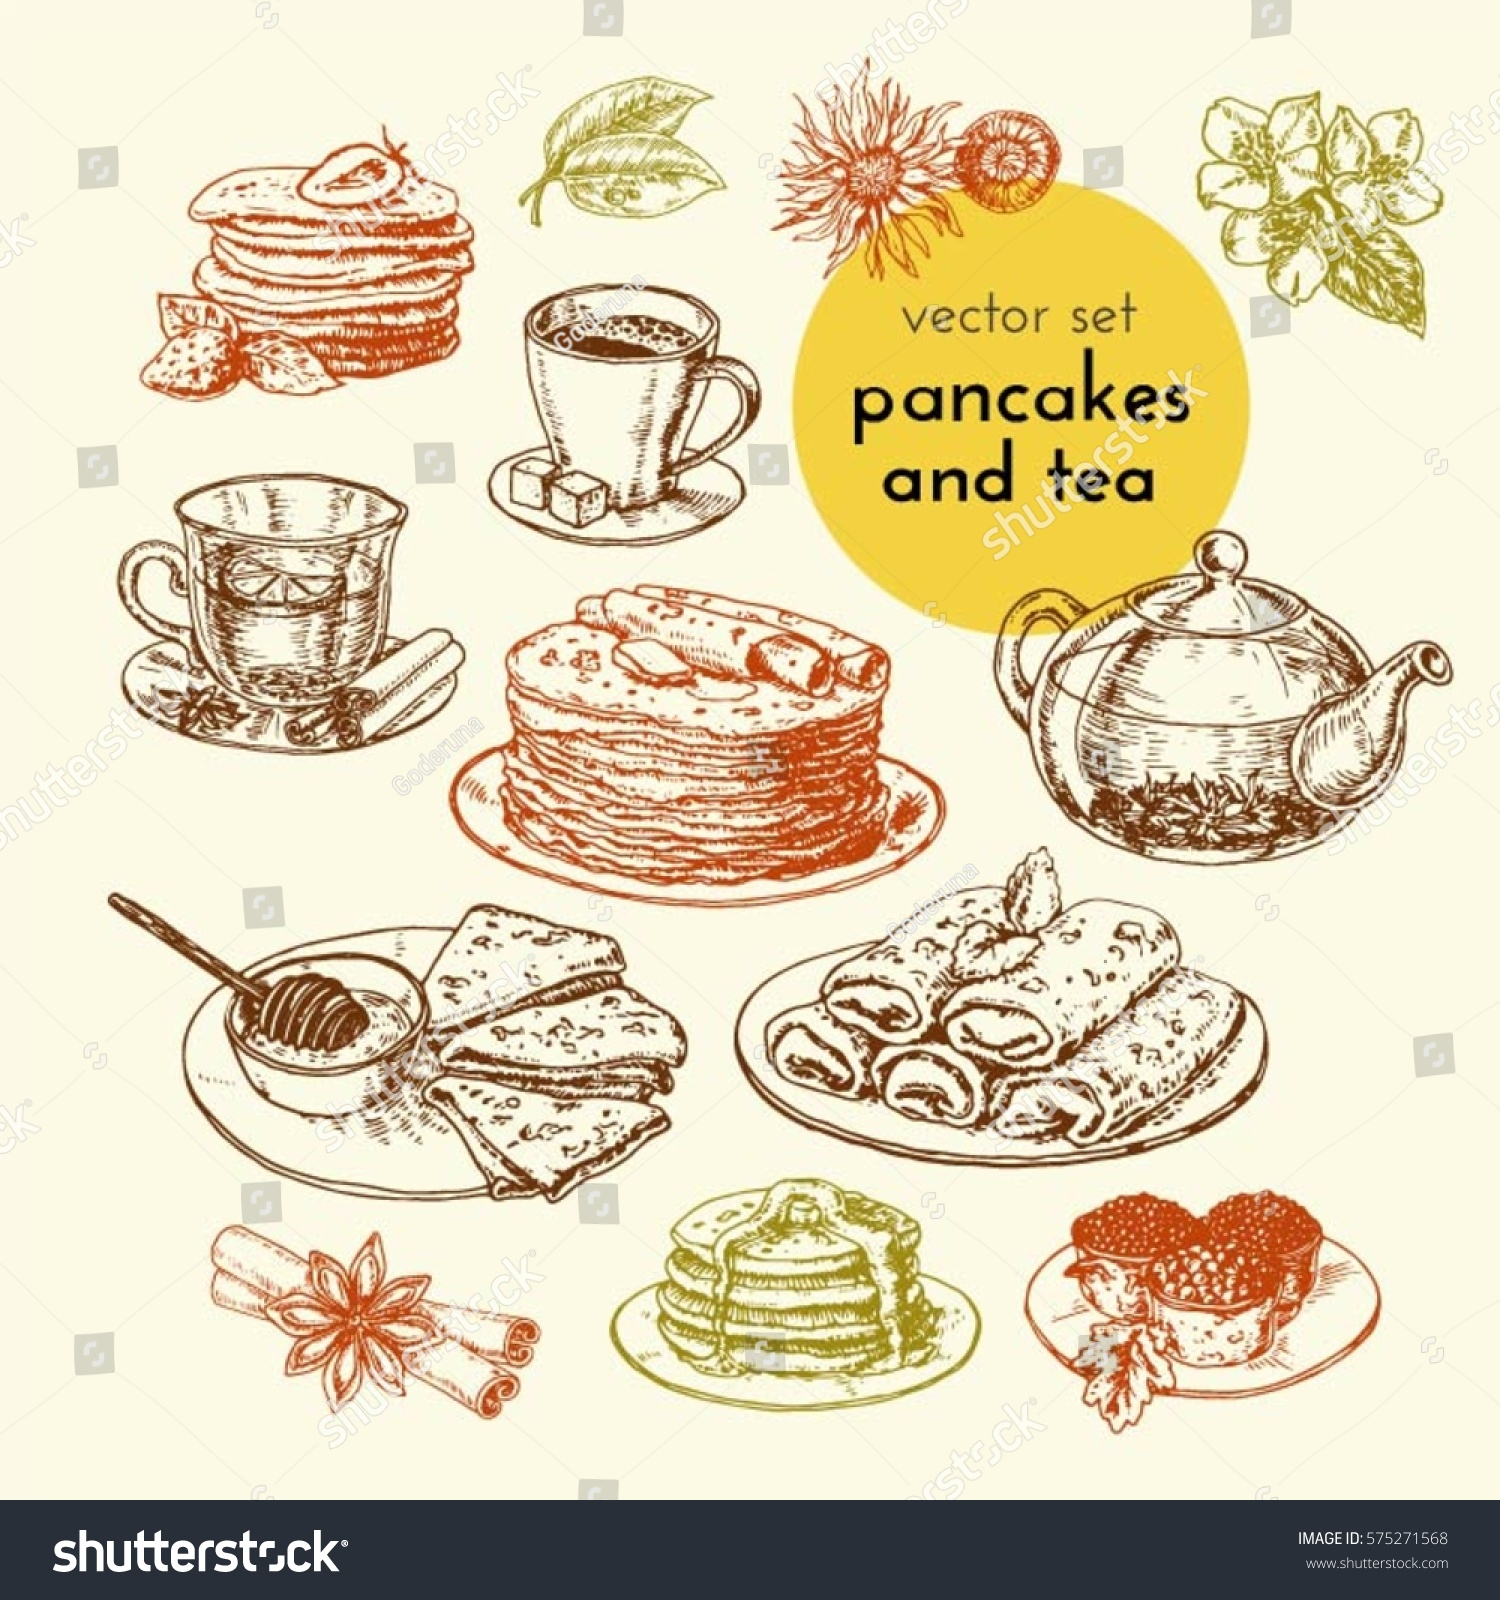 For restaurant pictures graphics illustrations clipart photos - Vector Set Of Pancakes And Tea Illustrations For The Menu Of Restaurants And Cafes